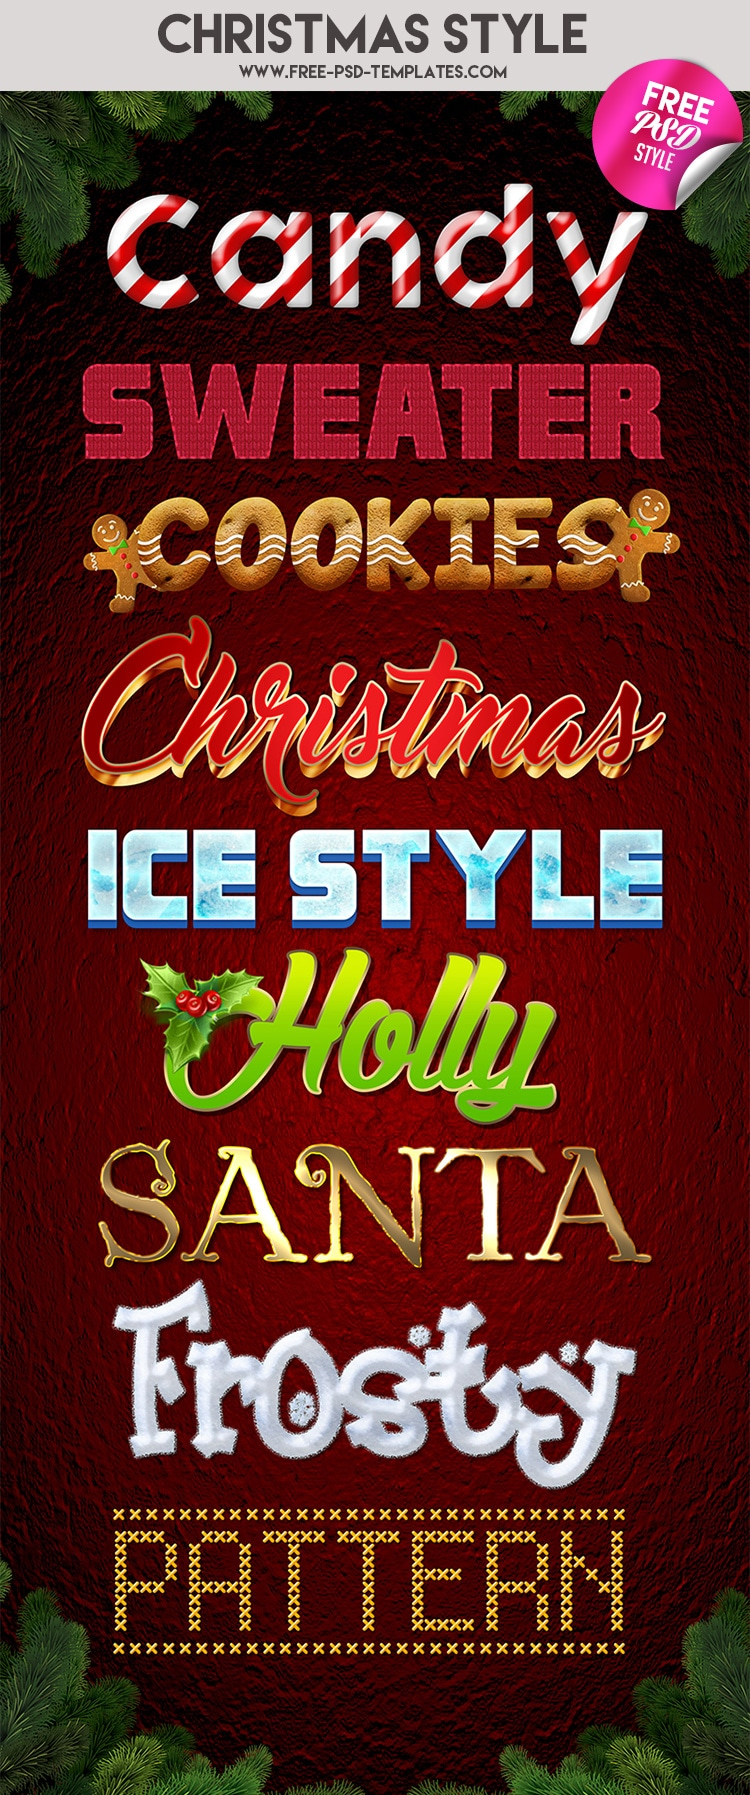 Free Christmas Style In PSD